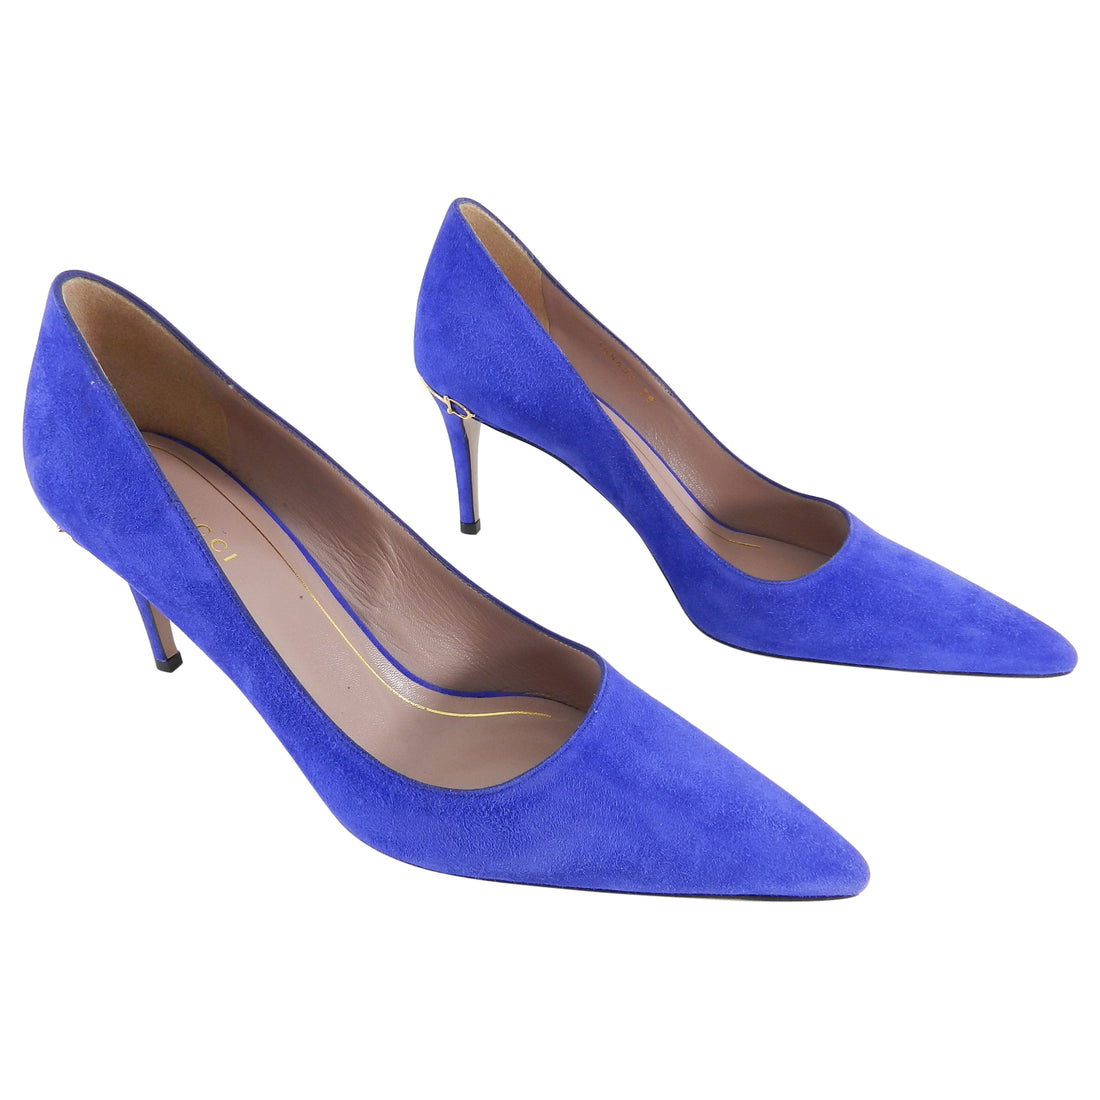 Gucci Adina Cobalt Blue Suede Pumps - 38